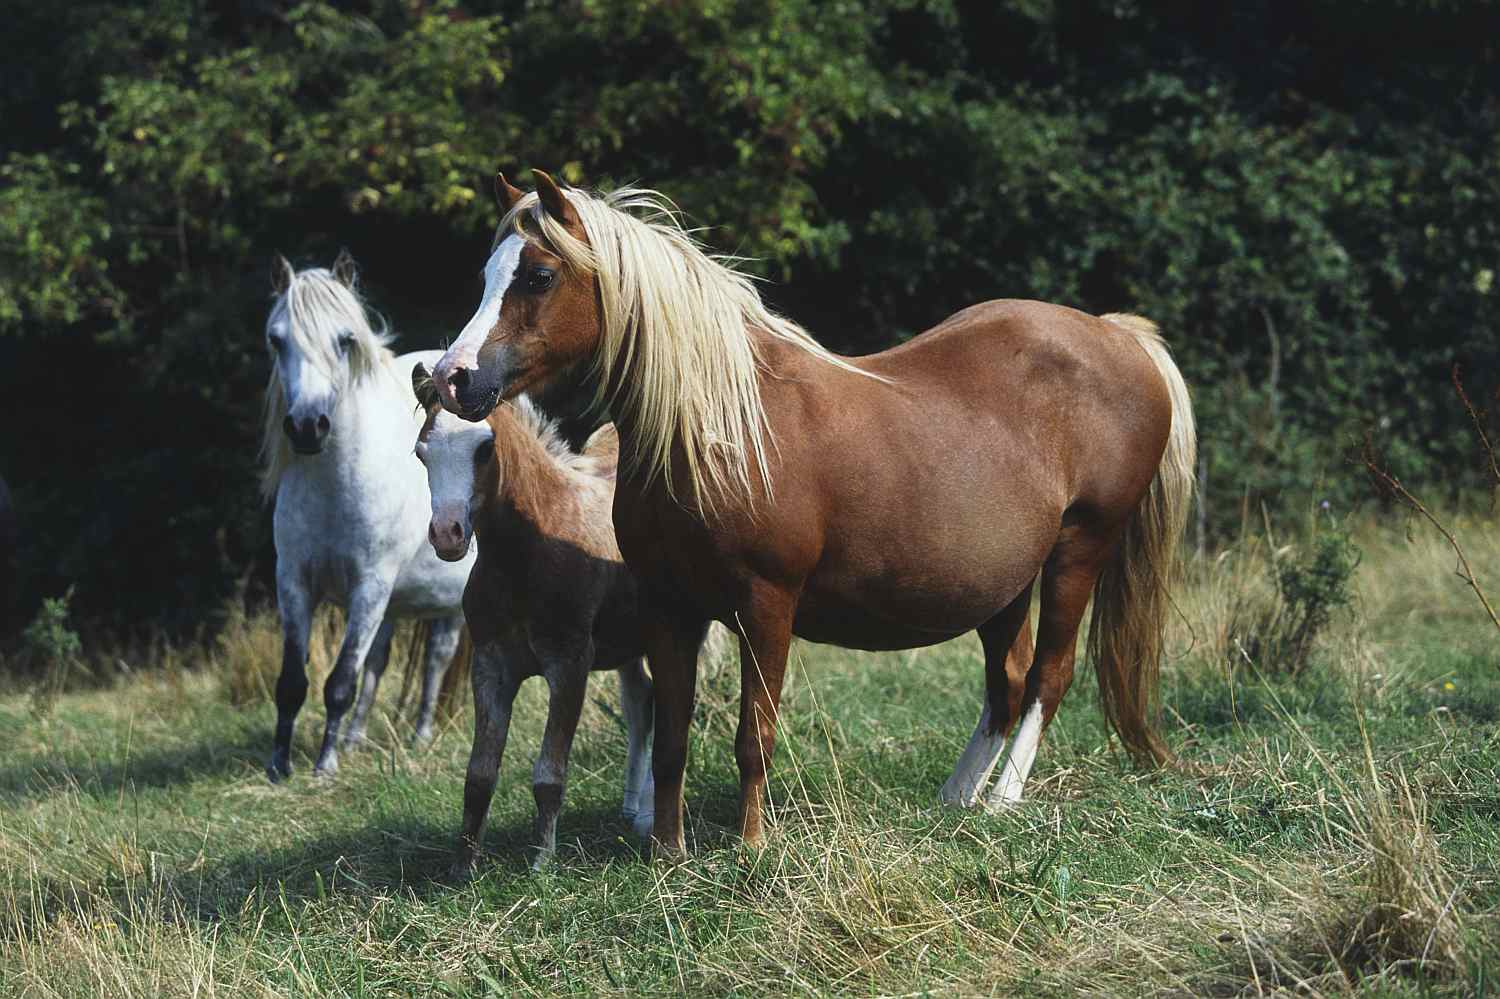 Pregnant mares and foal